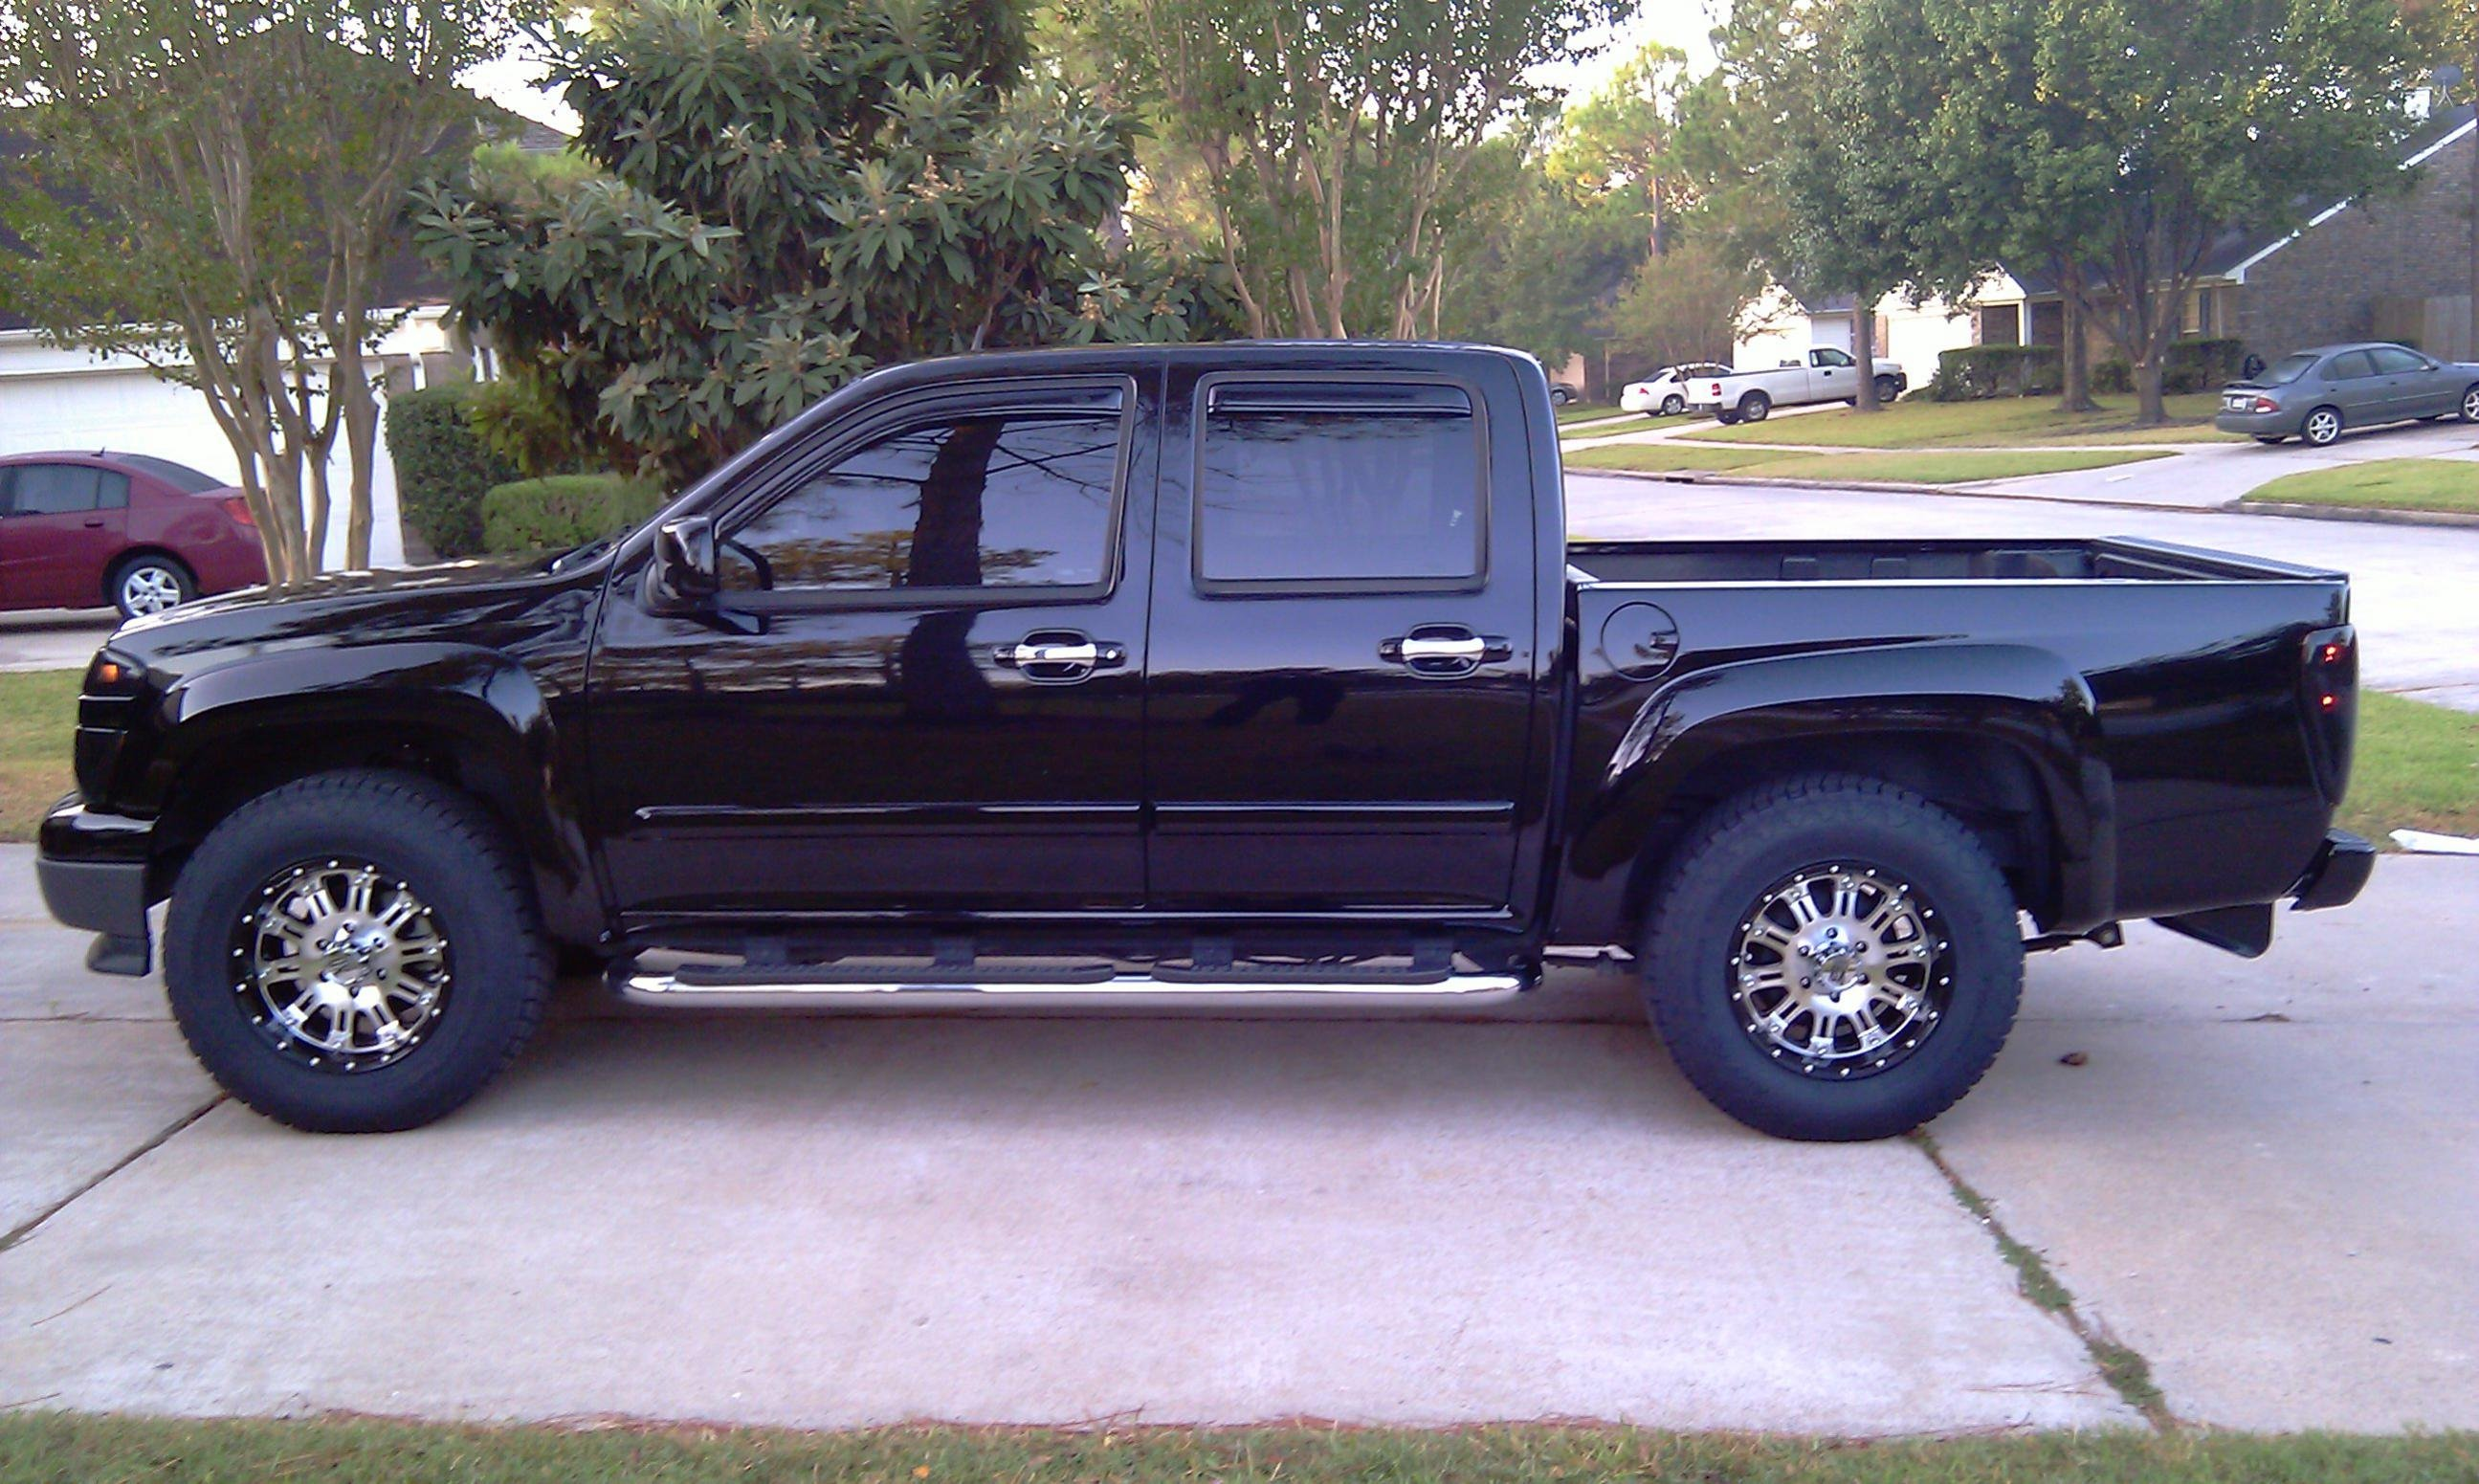 2wd lifted pics and info Chevrolet Colorado & GMC Canyon Forum